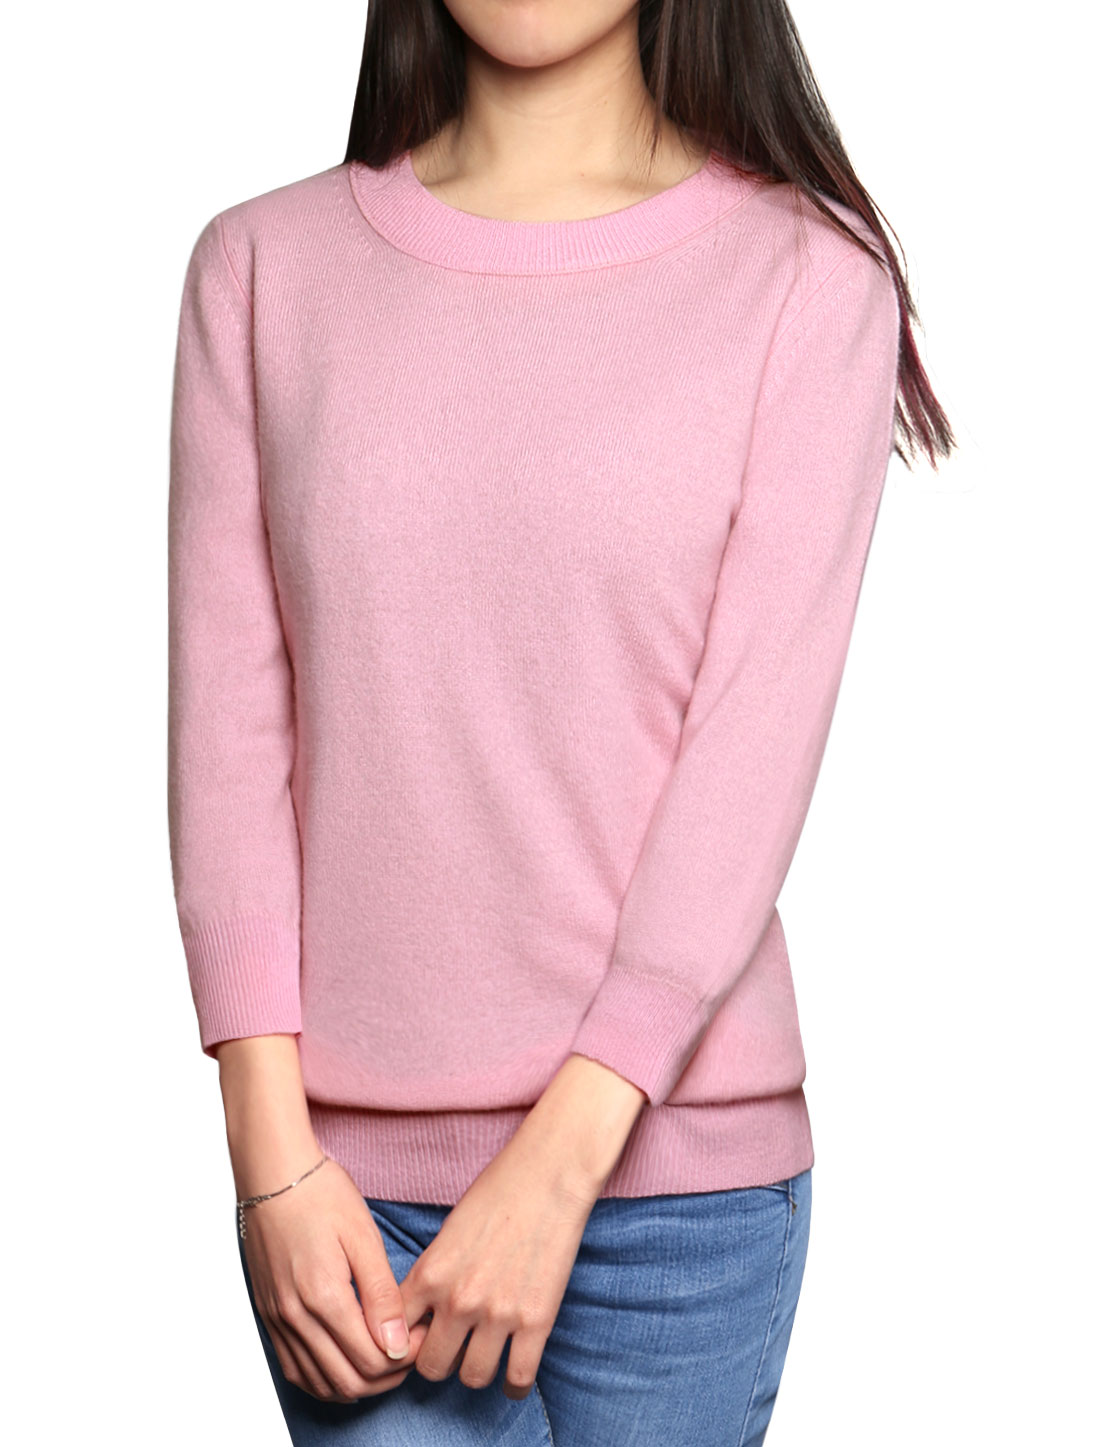 Women 3/4 Sleeves Slim Fit Classic Cashmere Jumper Pink S